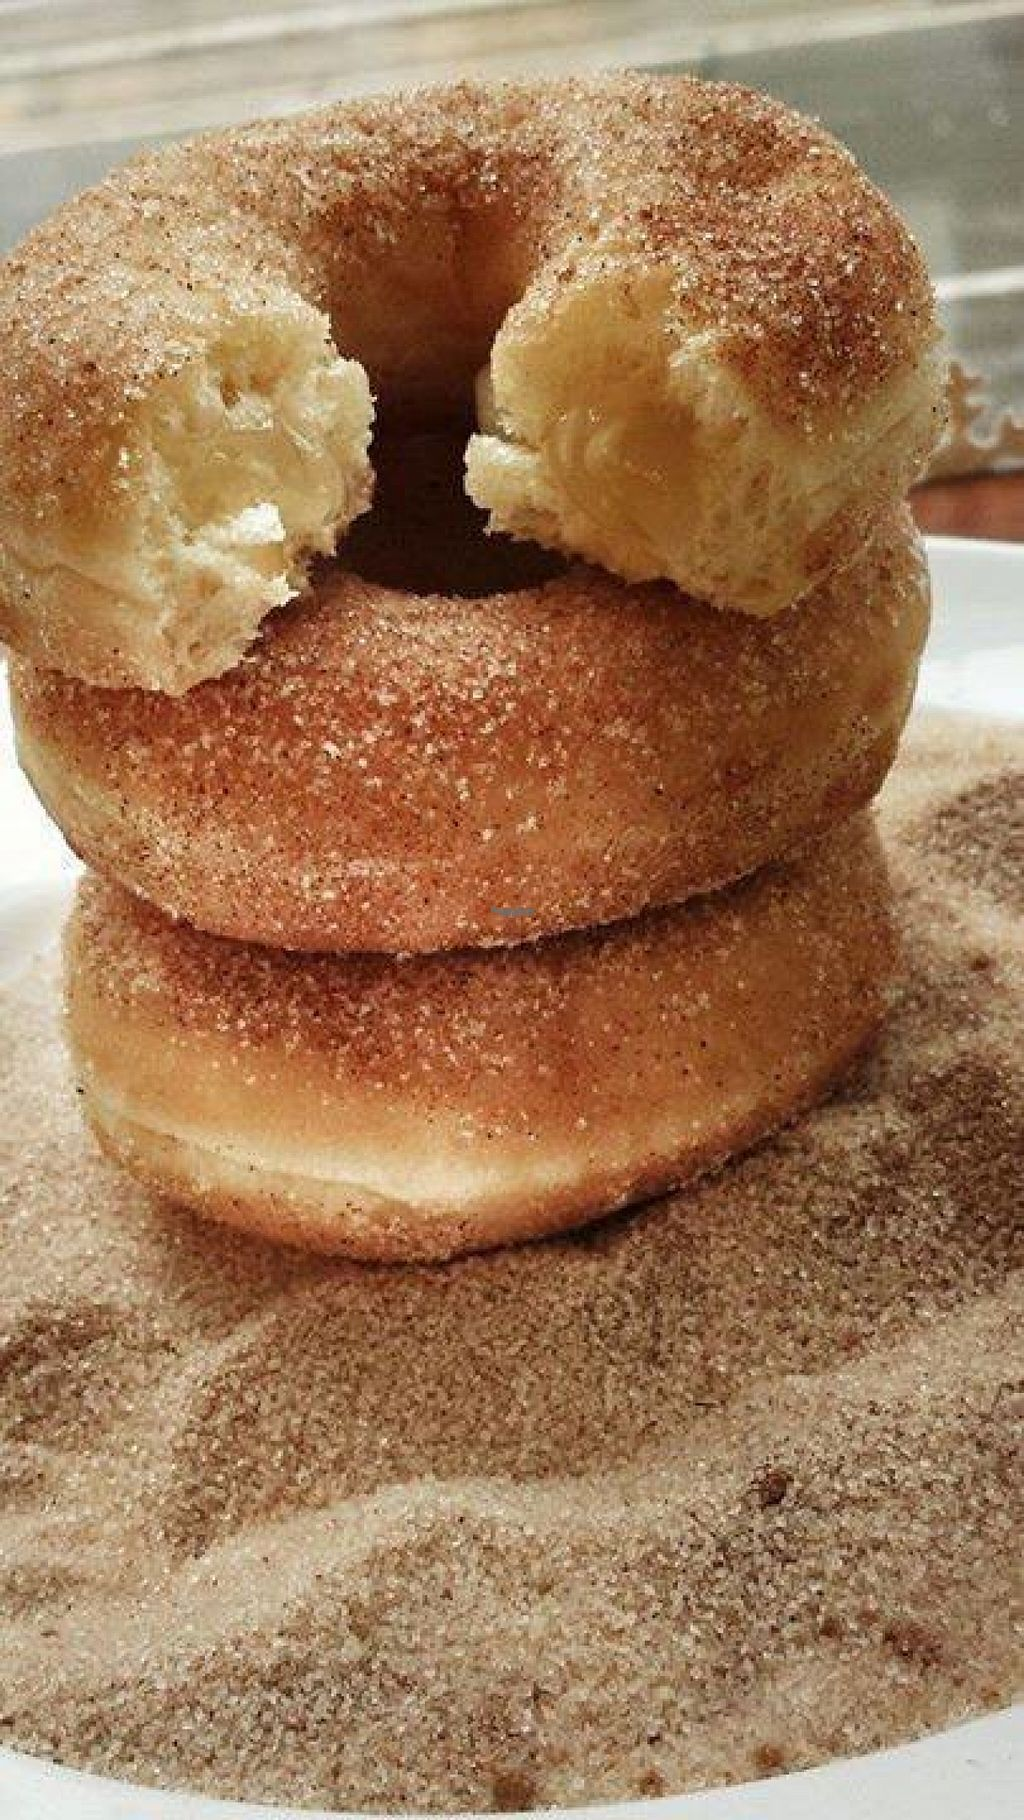 """Photo of REMOVED: Tasty Donuts & Coffee  by <a href=""""/members/profile/happyowl"""">happyowl</a> <br/>Apple cinnamon <br/> August 14, 2016  - <a href='/contact/abuse/image/78583/168503'>Report</a>"""